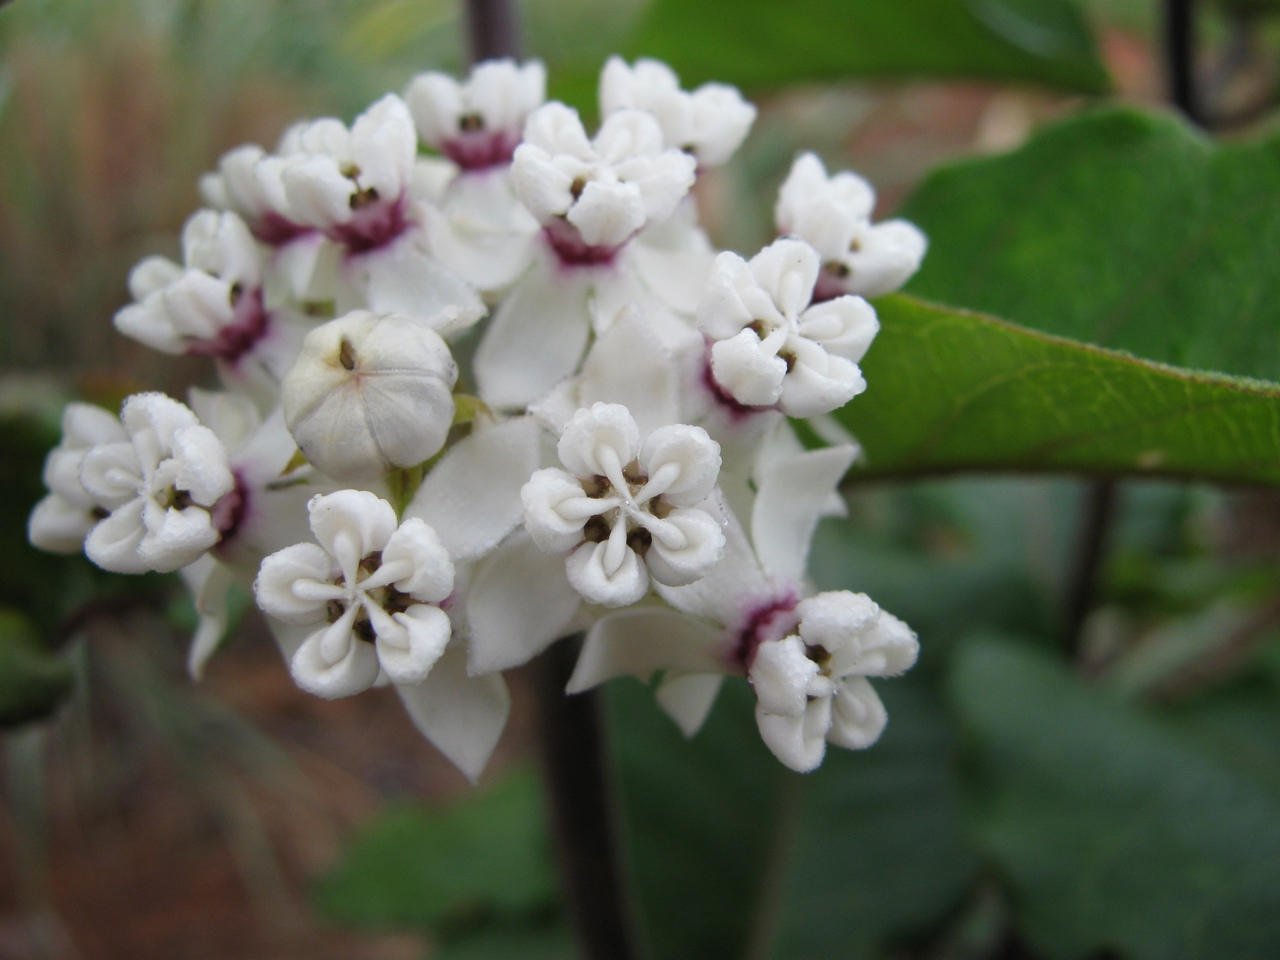 The Scientific Name is Asclepias variegata. You will likely hear them called Redring Milkweed, White Milkweed. This picture shows the Close-up of inflorescence. The flowers are bright white with a purple band around the center of each flower.  of Asclepias variegata